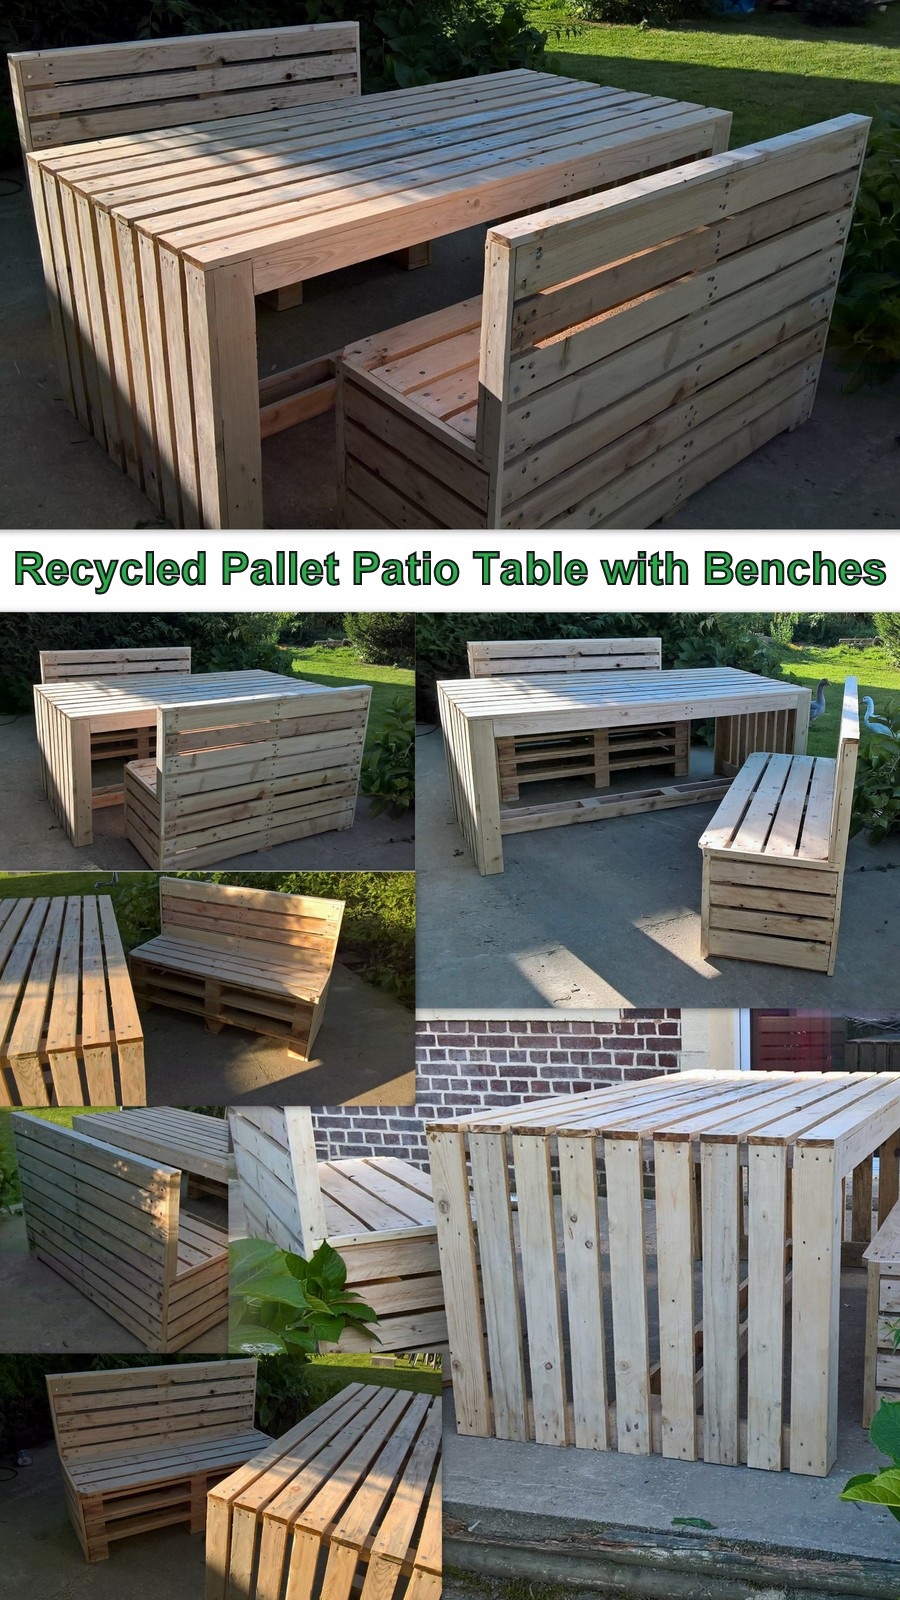 Recycled Pallet Patio Table with Benches